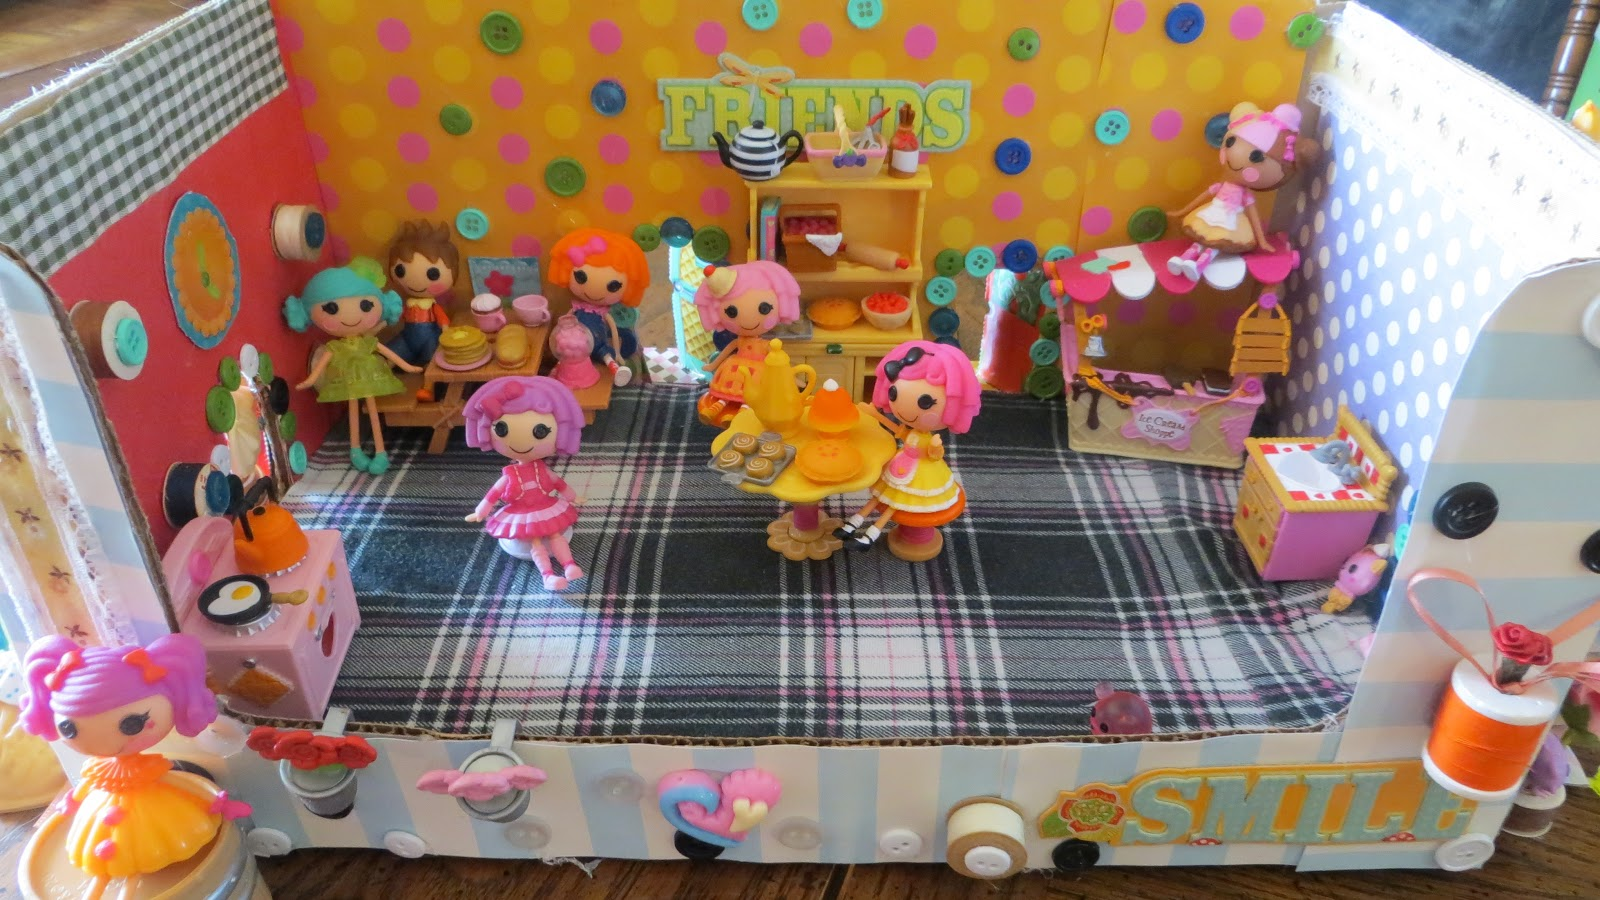 Lovely ... Scrapbook Paper, Sewing Bobbins, Buttons, Thread Spools And The Cute  Lalaloopsy Cardboard Houses That The Mini Dolls Come Packaged In.